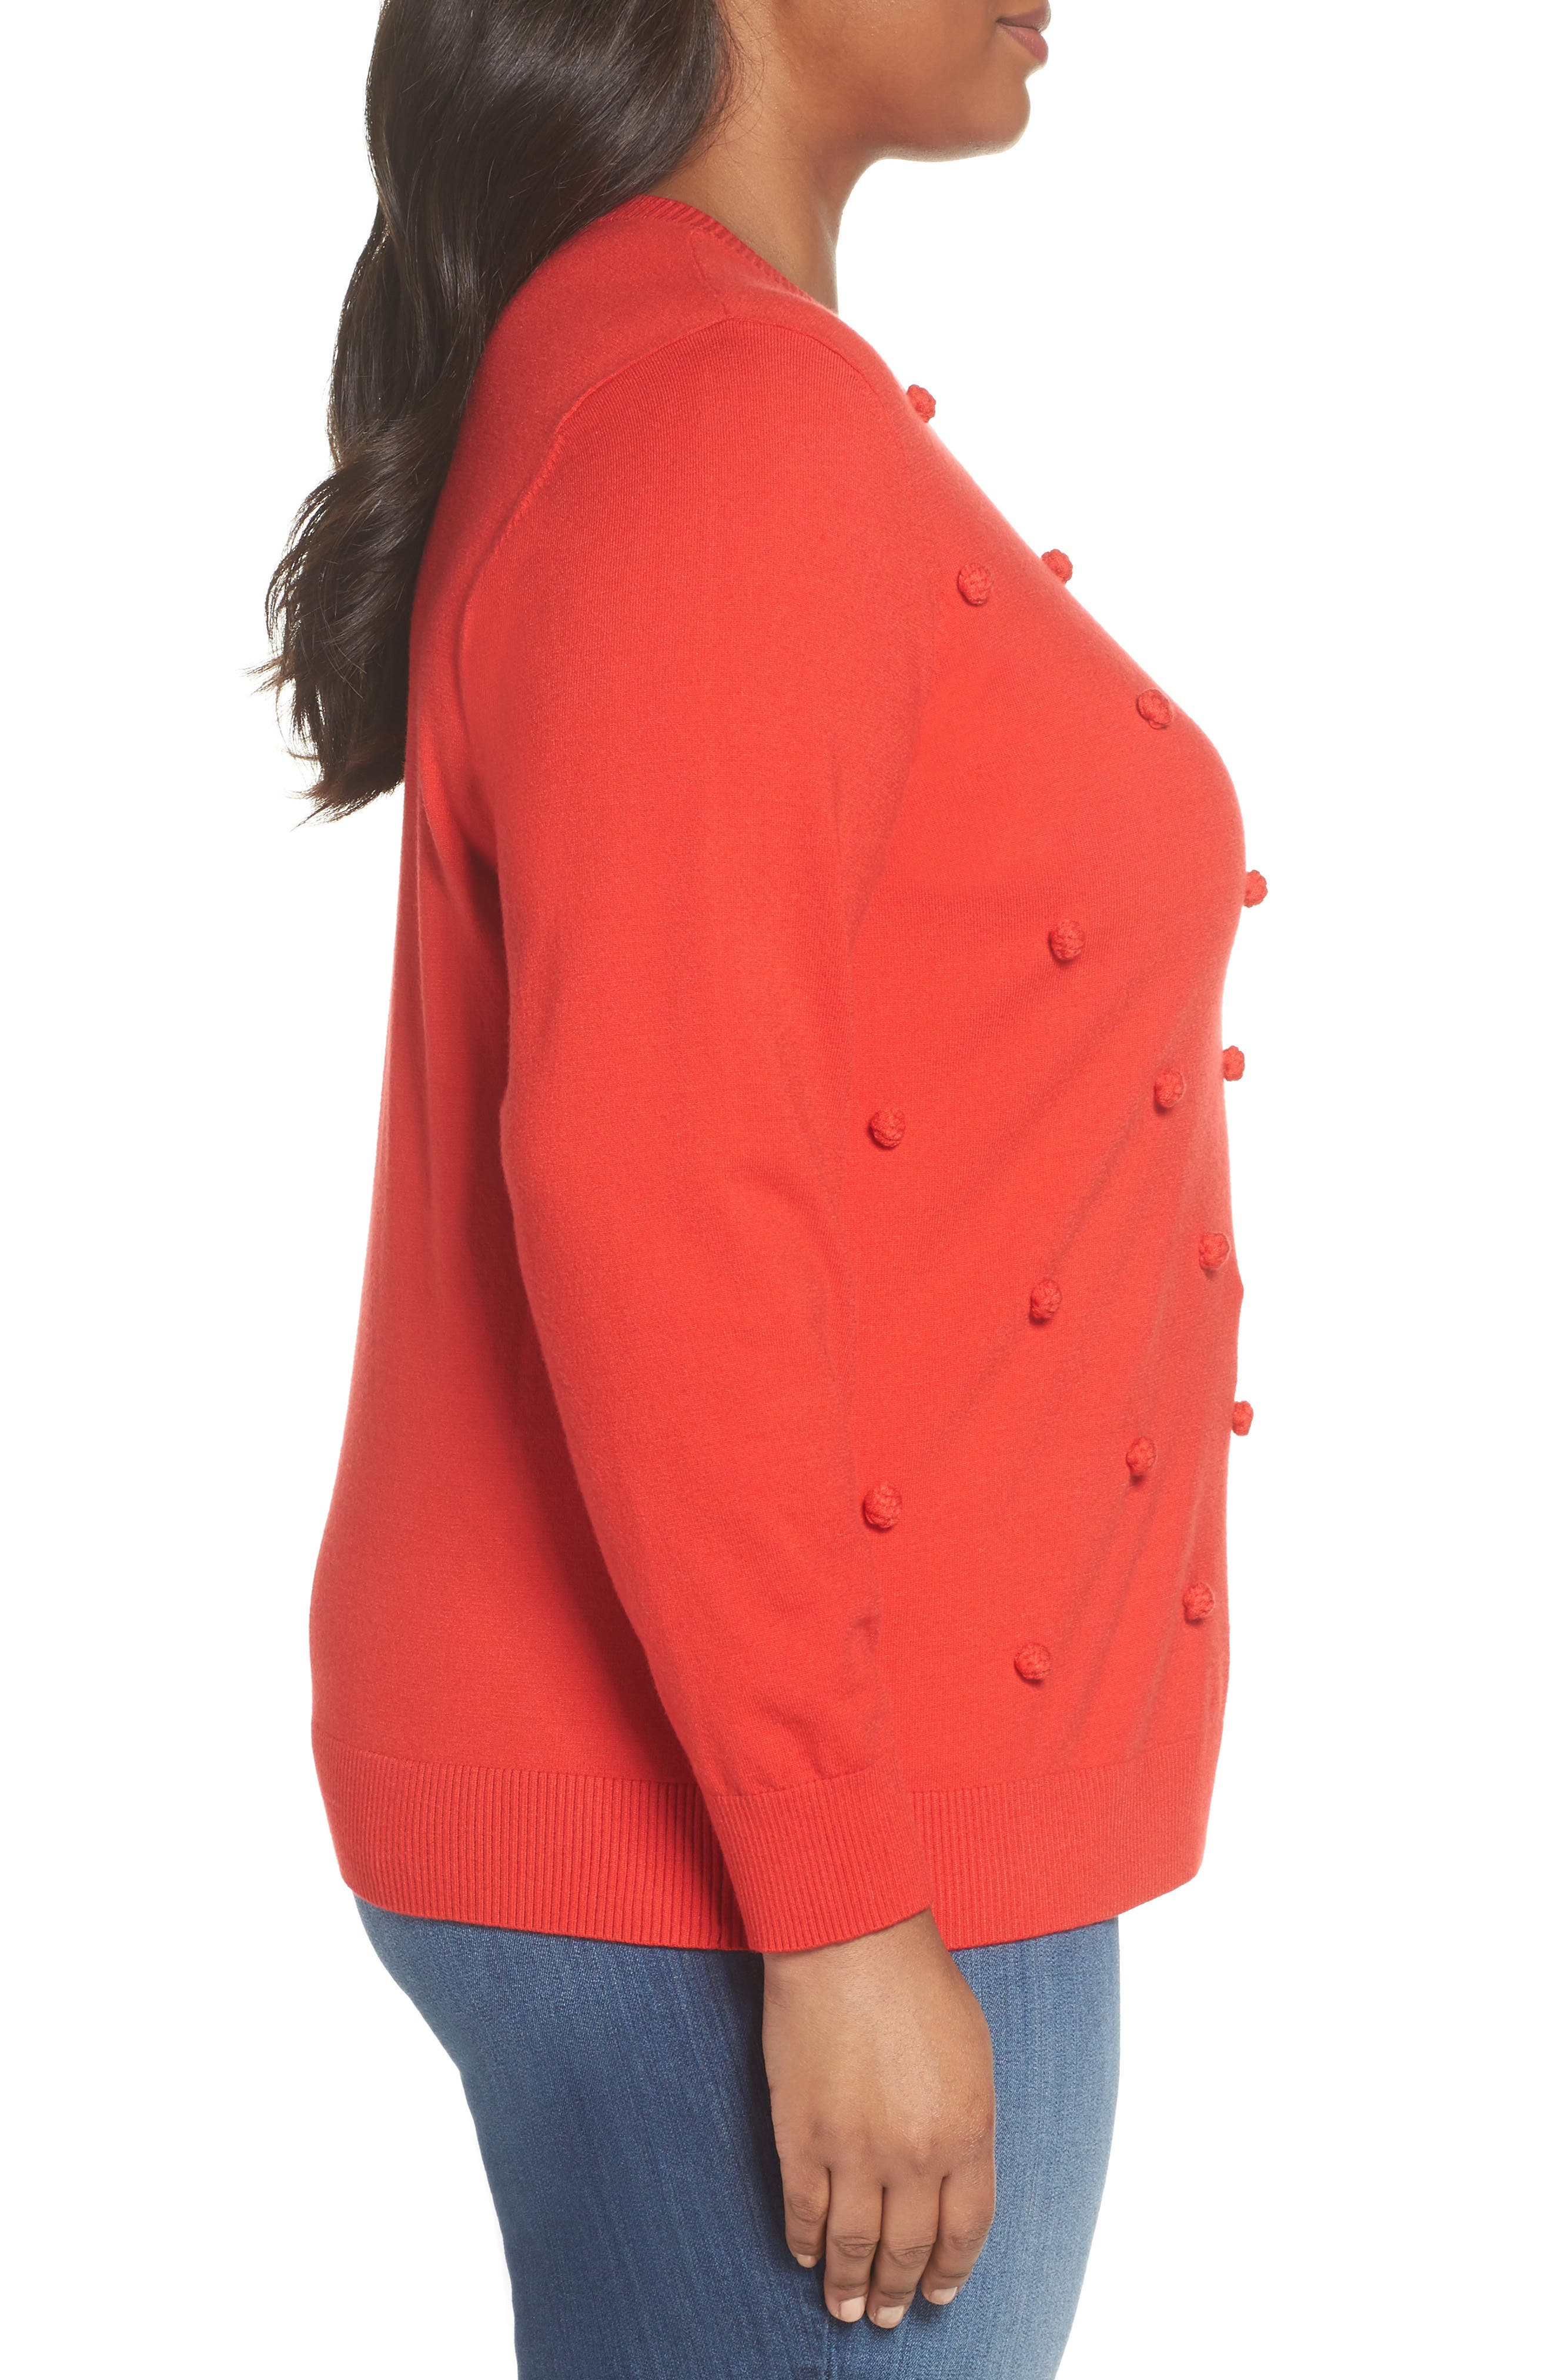 Popcorn Stitch Sweater,                             Alternate thumbnail 3, color,                             RED TOMATO